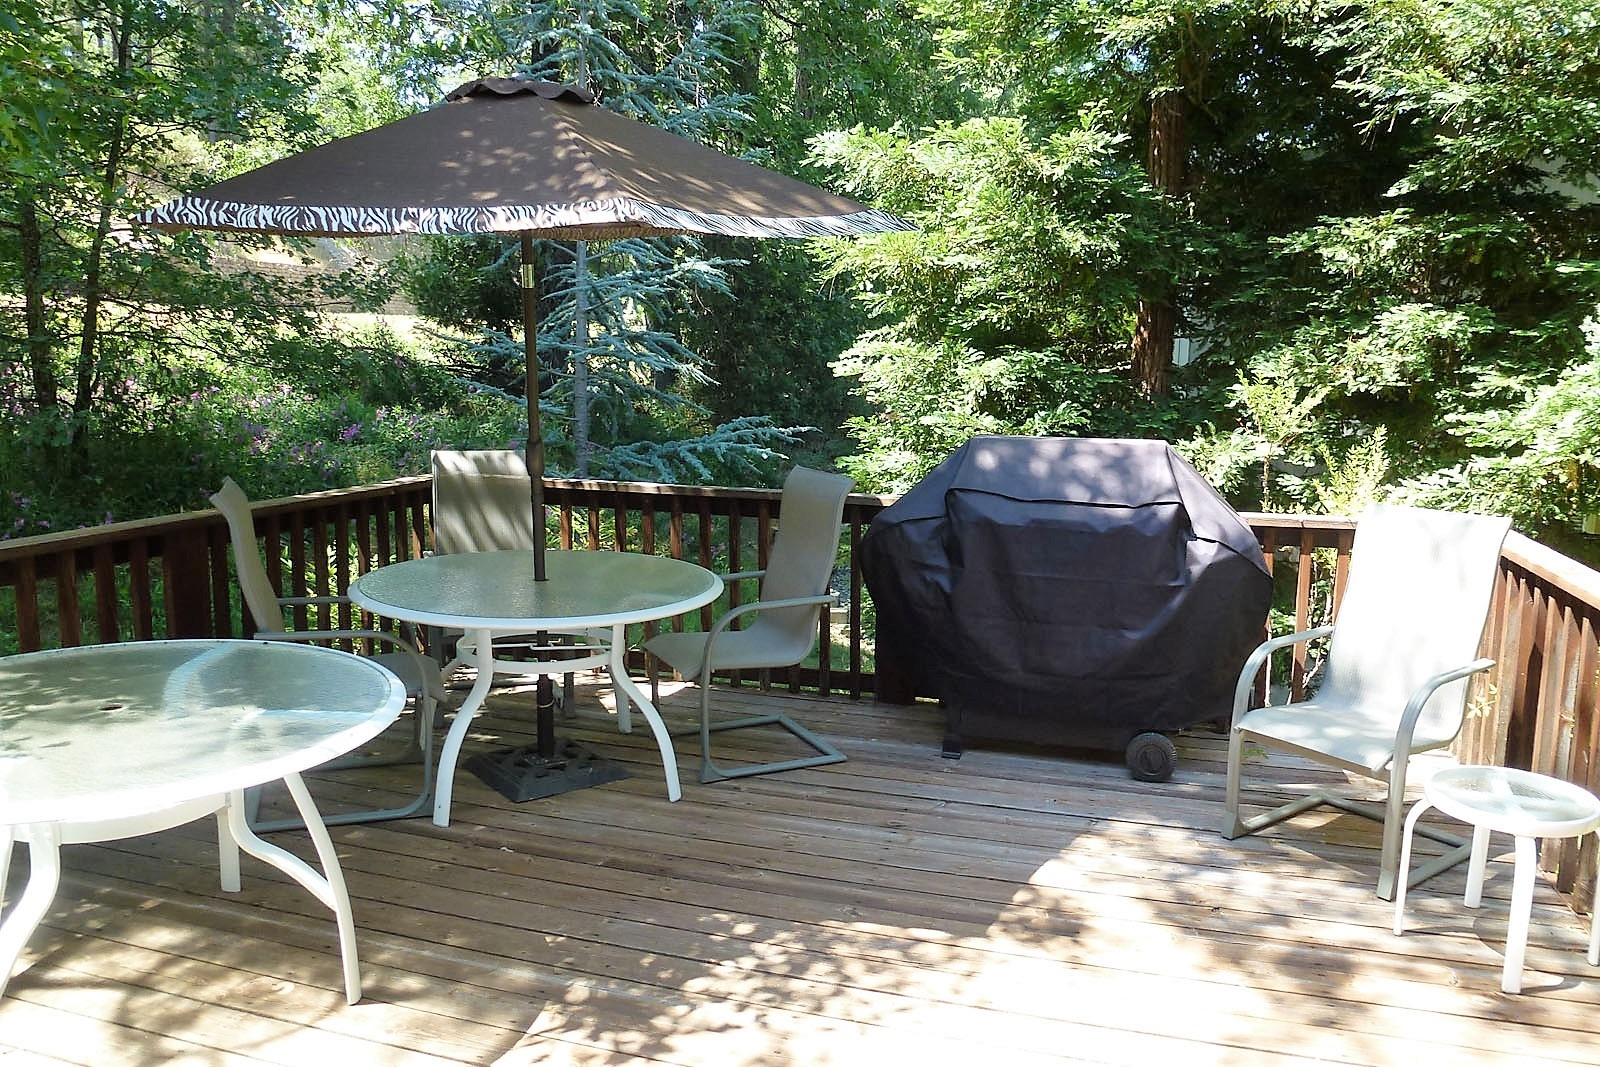 Conveniently located deck for everyone with a BBQ, 2 tables and plenty of chairs.